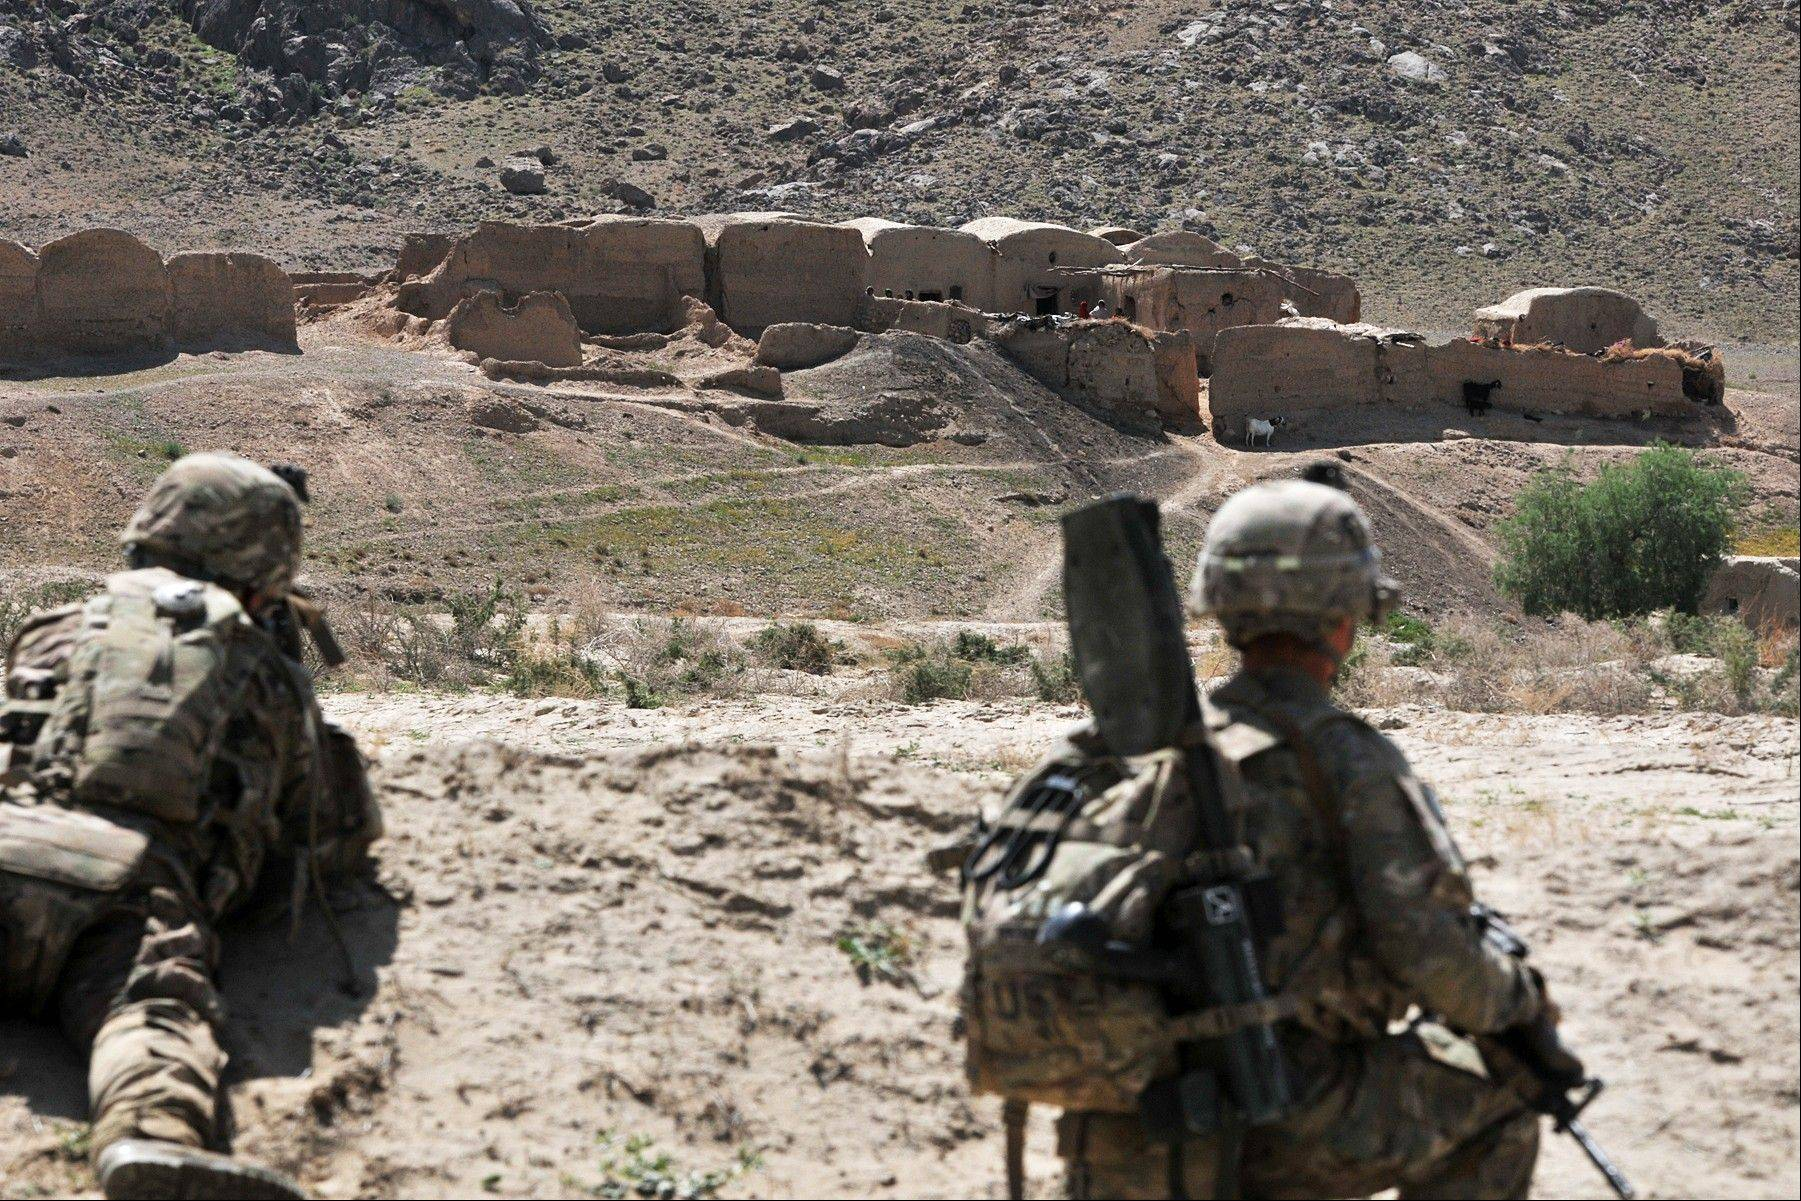 Associated Press.April 10 Soldiers with Charlie Company, 1st Battalion, 38th Infantry Regiment, 4th Brigade Combat Team, 2nd Infantry Division provide security while their comrades search a village in the Panjwai district of Kandahar province, Afghanistan.